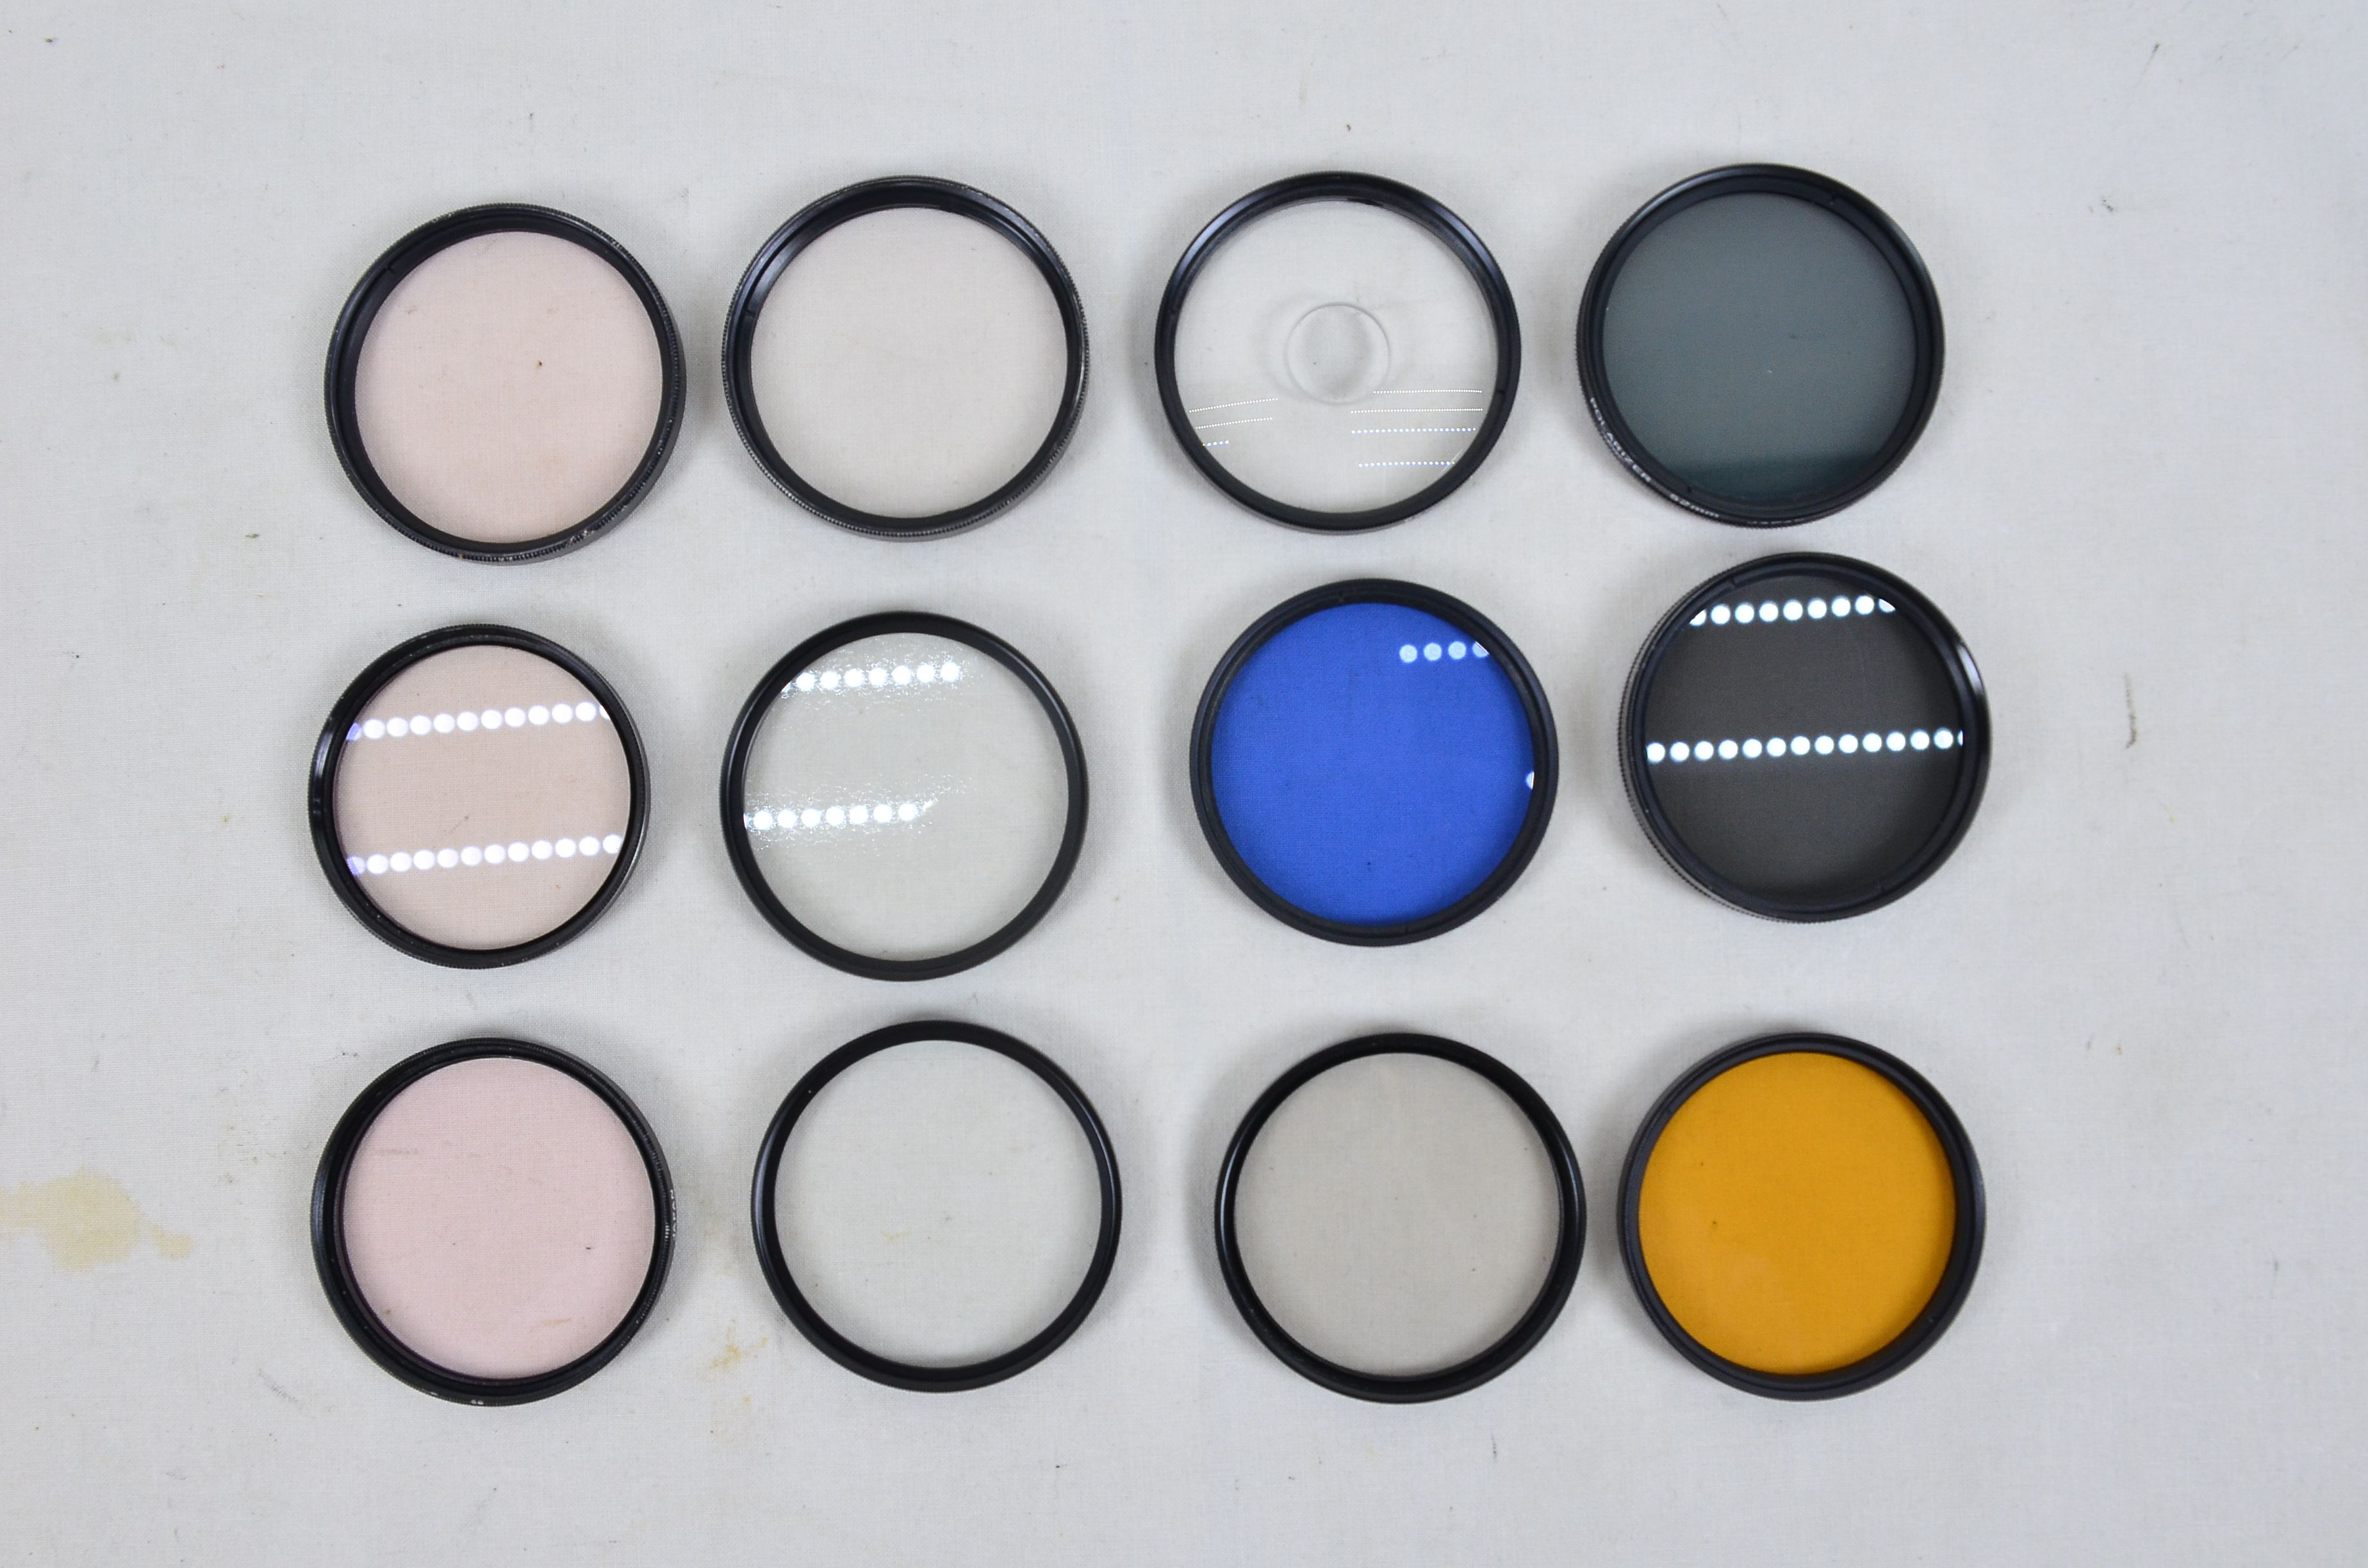 Assorted Photographic Filters 1 49mm And 11 52mm Special Effects Filters Thumbnail 1